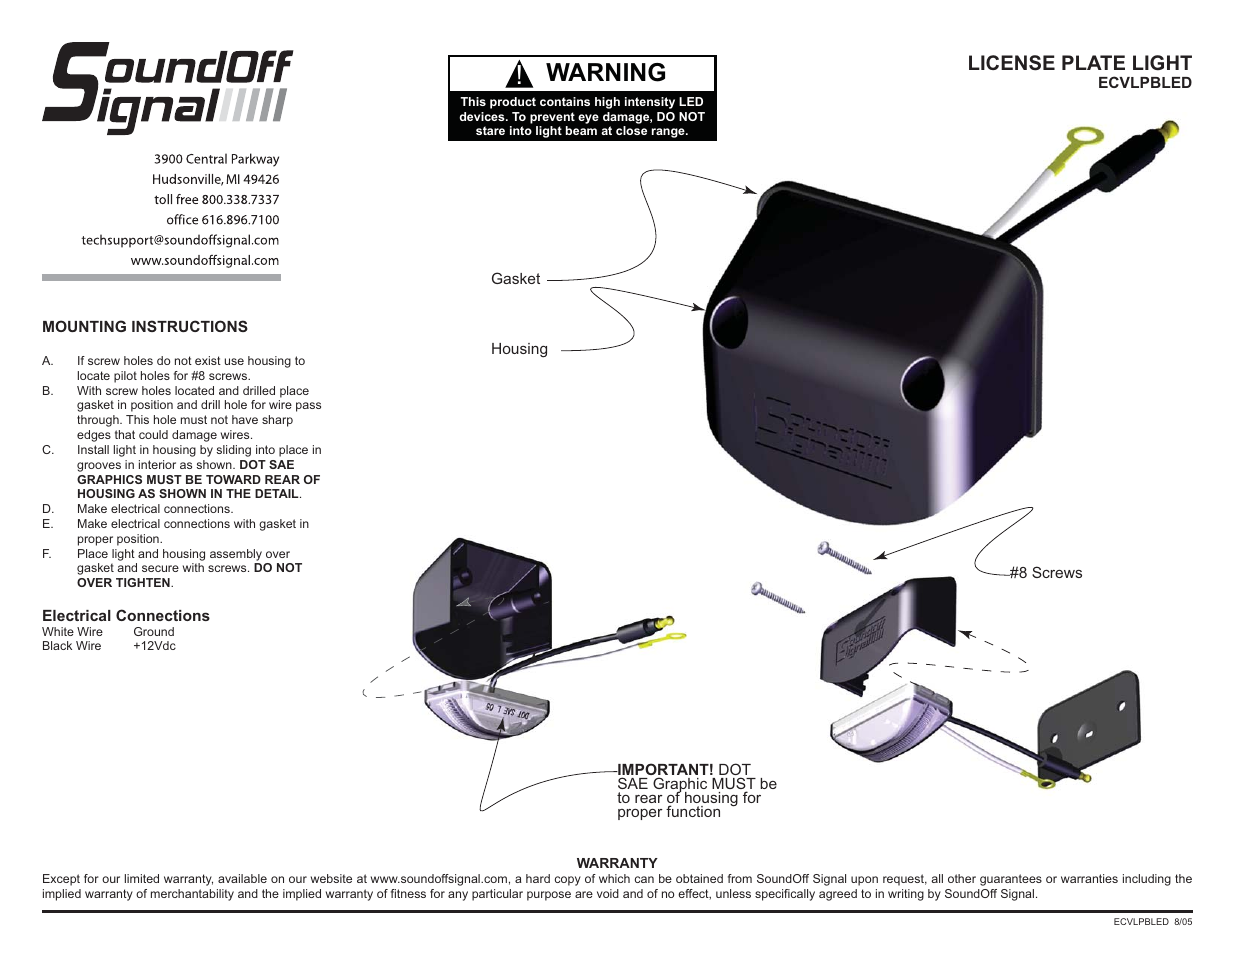 Soundoff Signal Led Compact License Plate Light User Manual 1 Page Tag Wiring Diagram